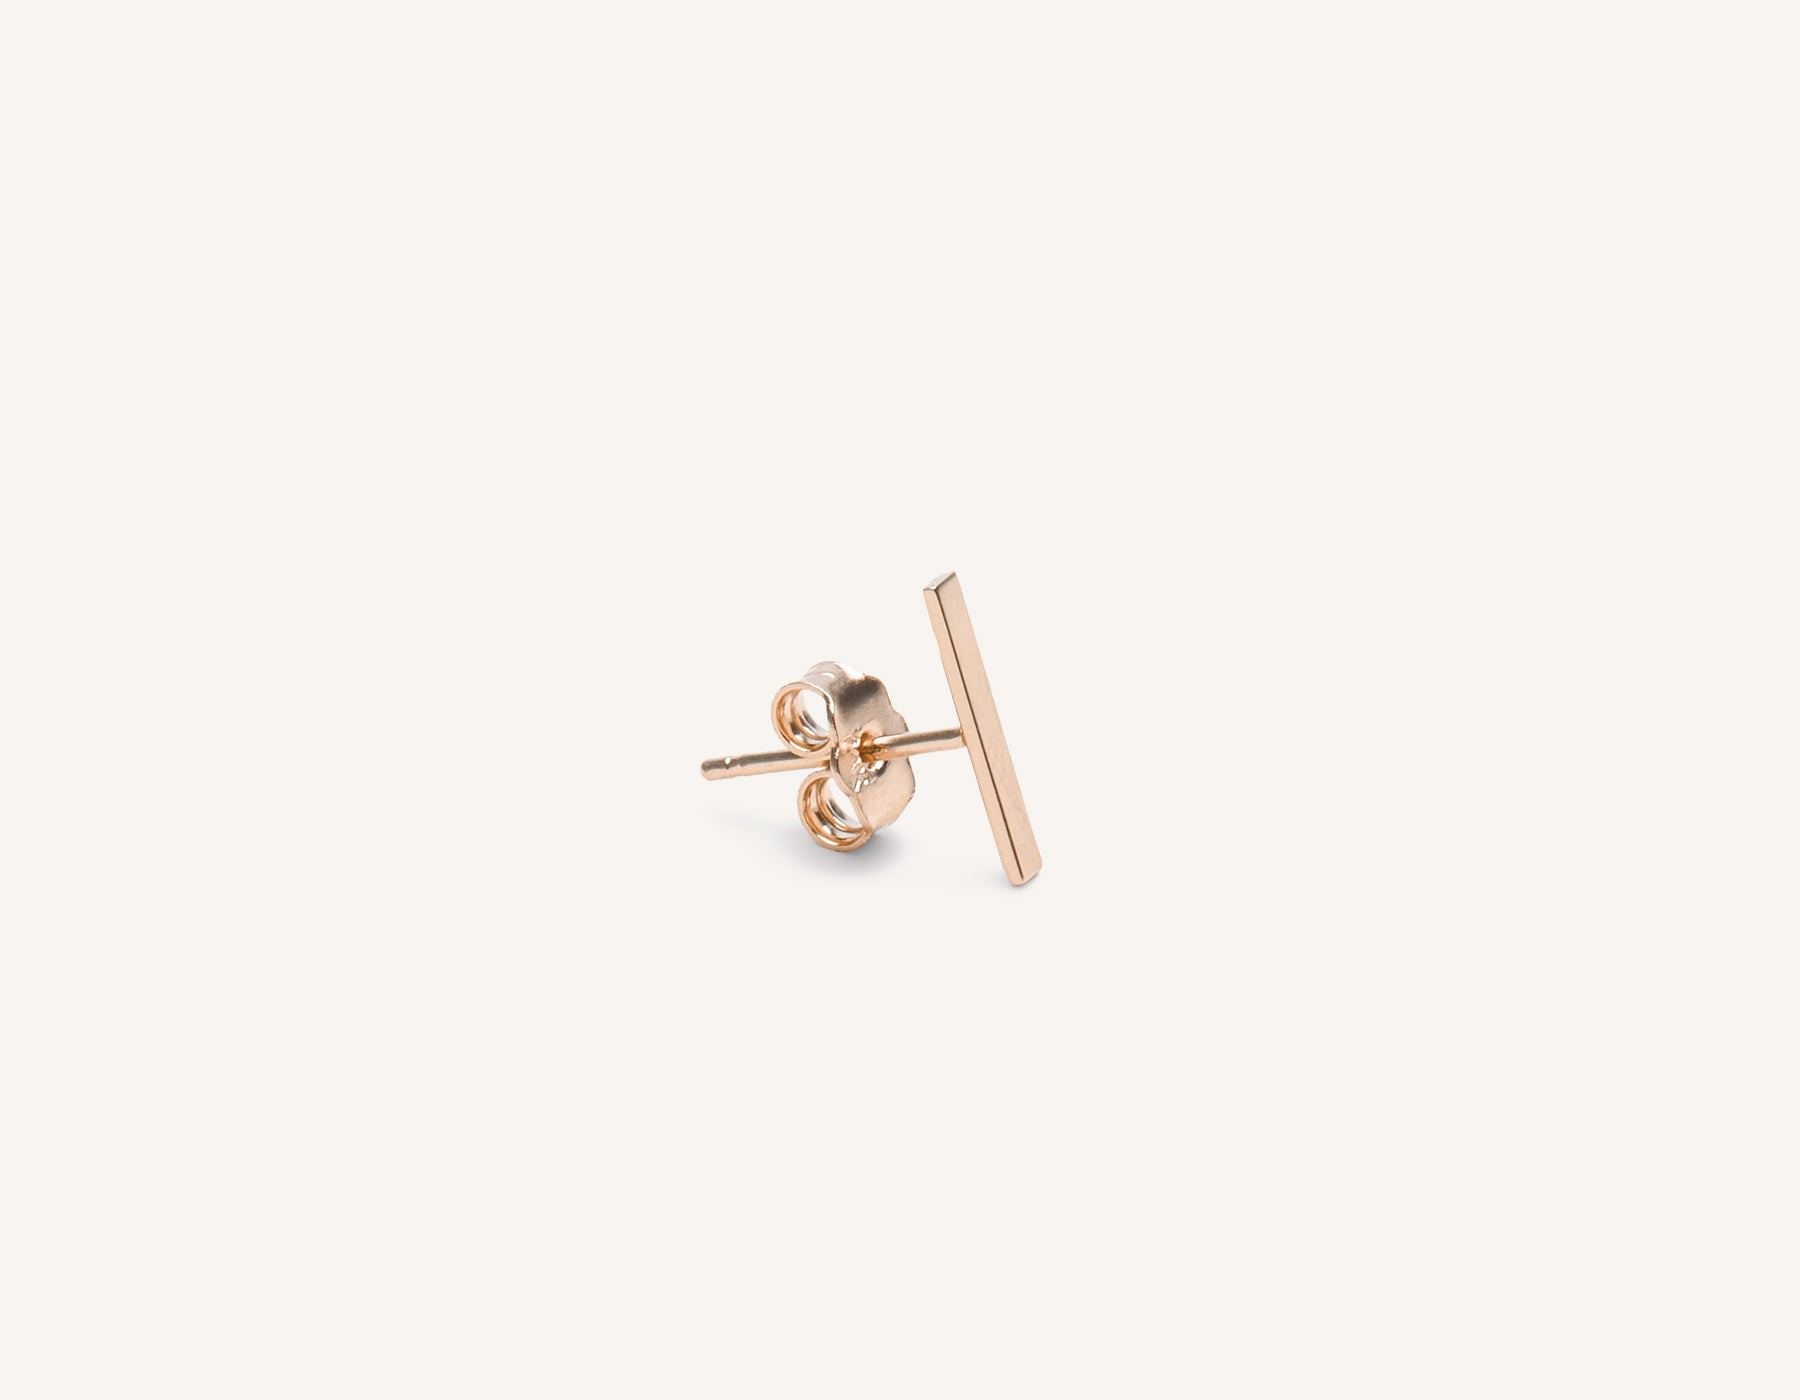 Contemporary subtle Line Stud earring 14k solid gold Vrai & Oro versatile jewelry, 14K Rose Gold